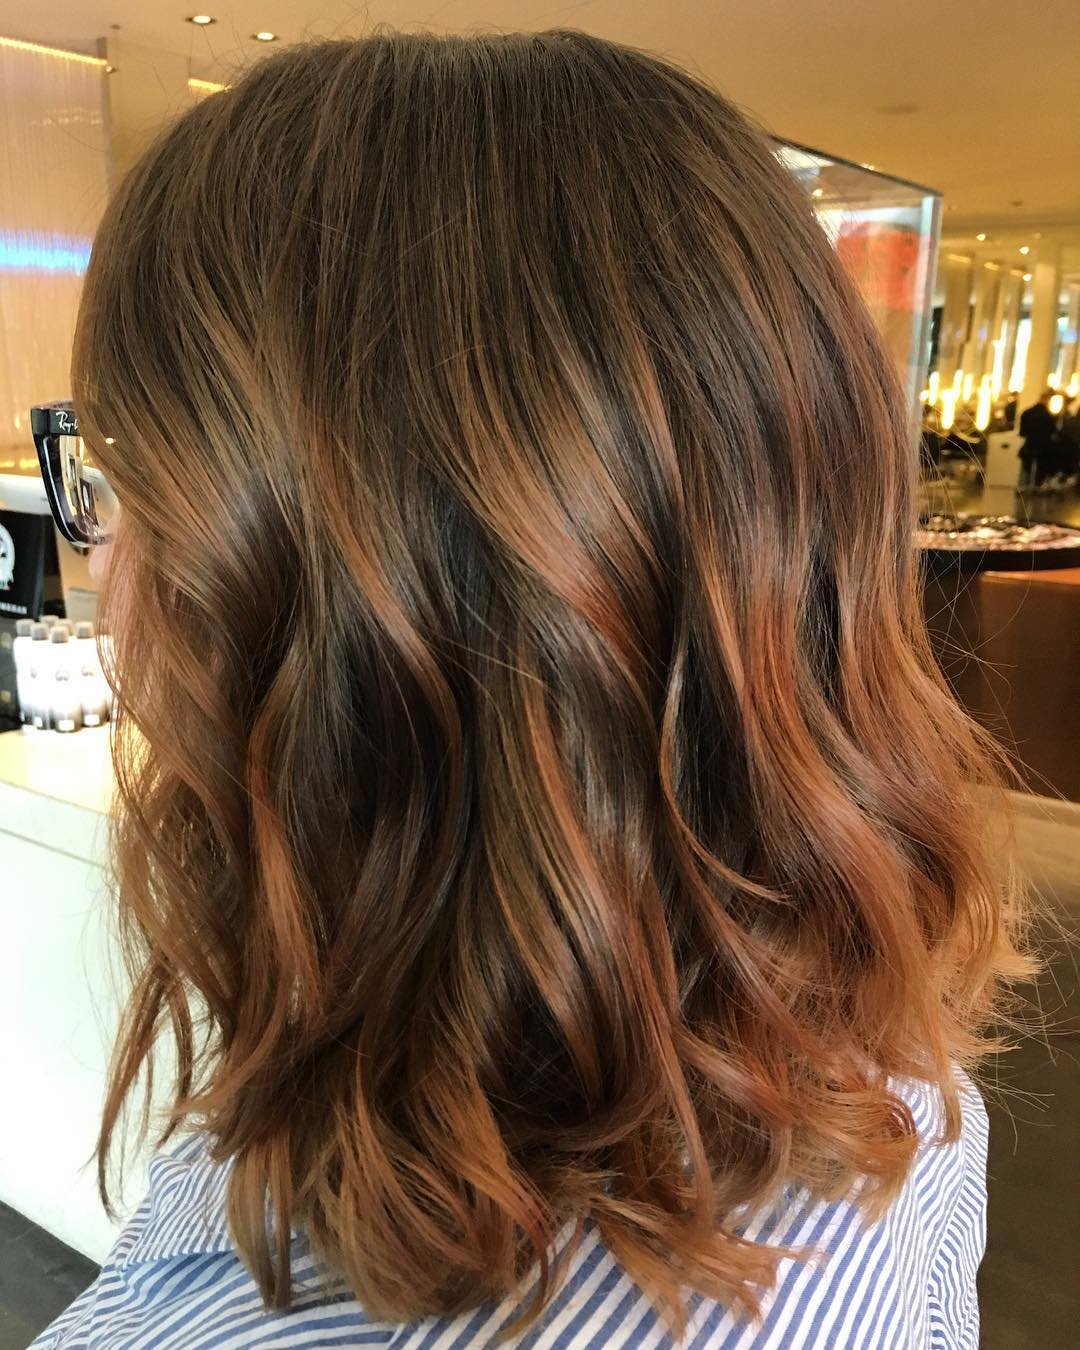 10 Best Medium Length Layered Hairstyles 2021 Hairstyles Weekly